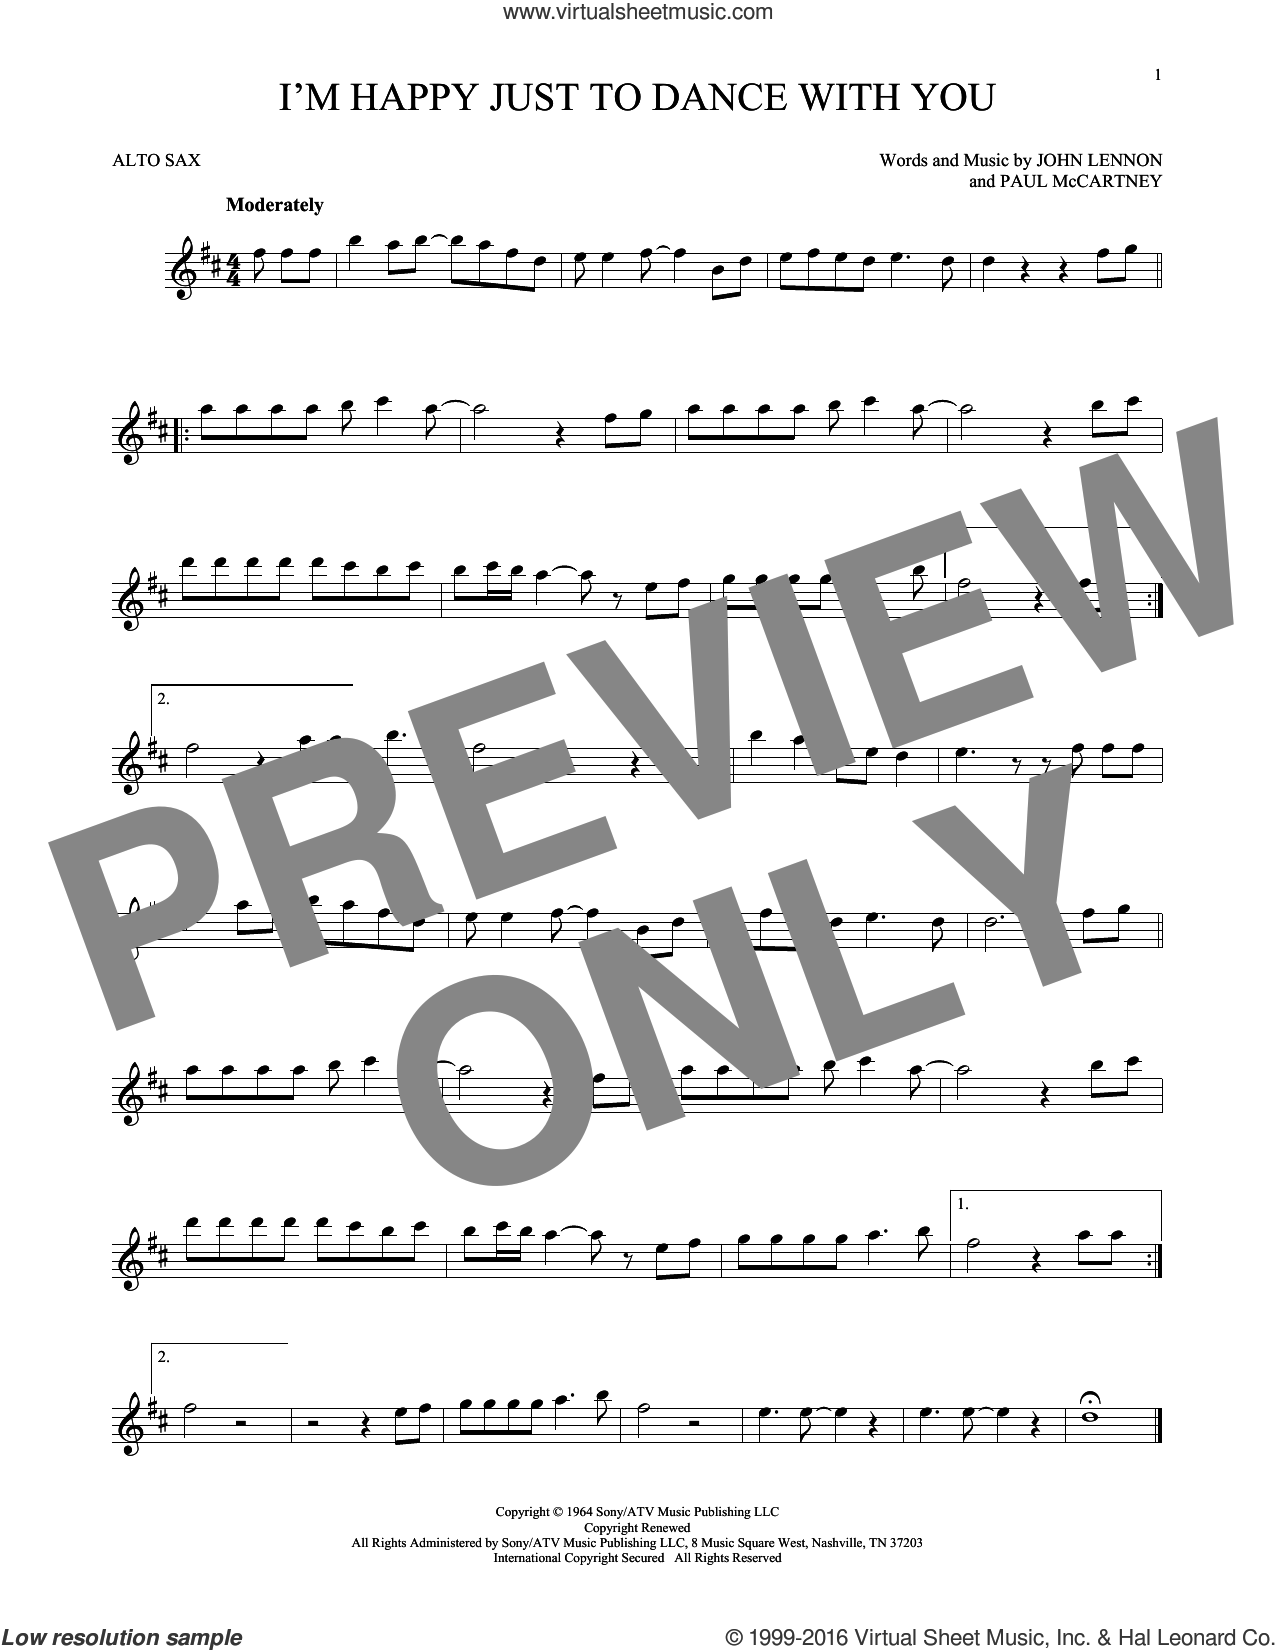 I'm Happy Just To Dance With You sheet music for alto saxophone solo by The Beatles, John Lennon and Paul McCartney, intermediate skill level